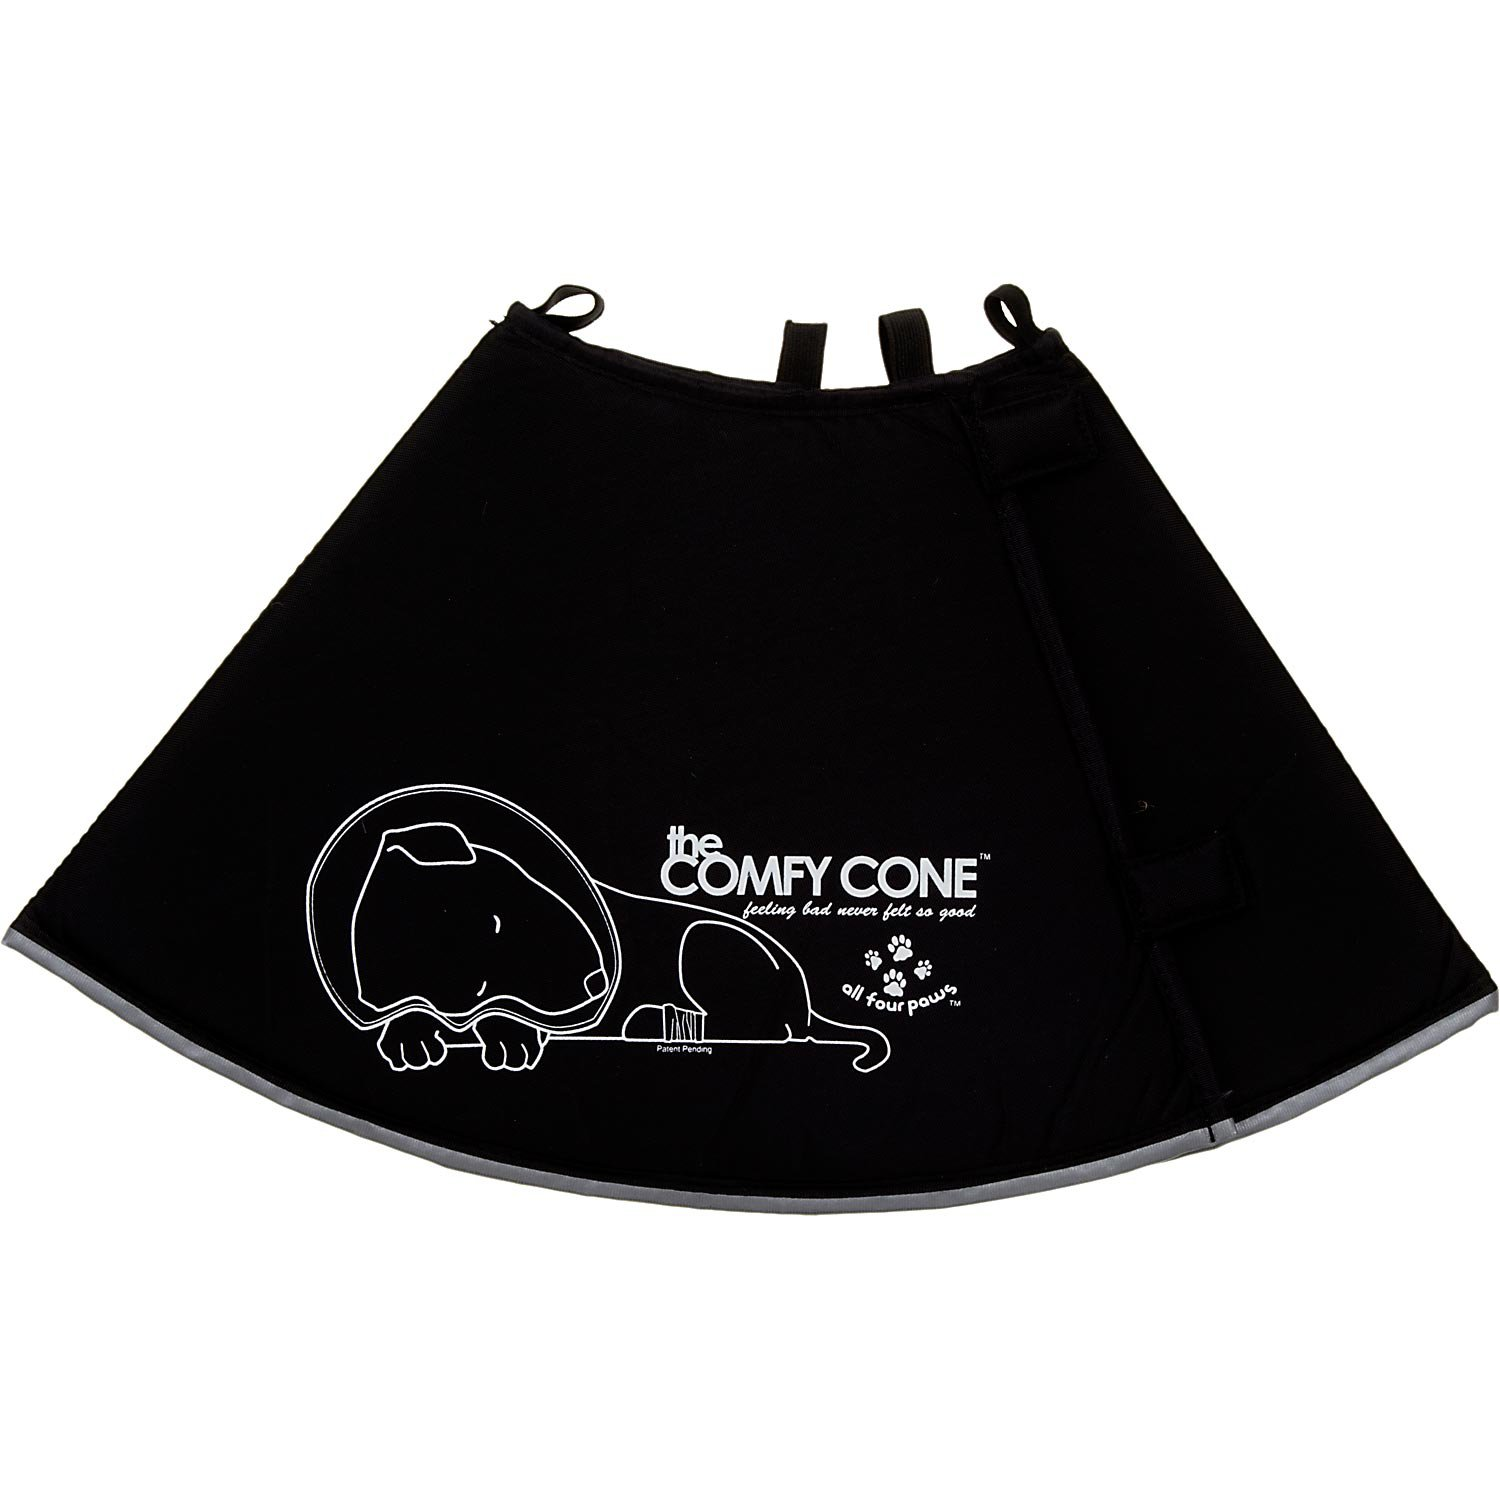 All Four Paws Black Comfy Cone | Petco